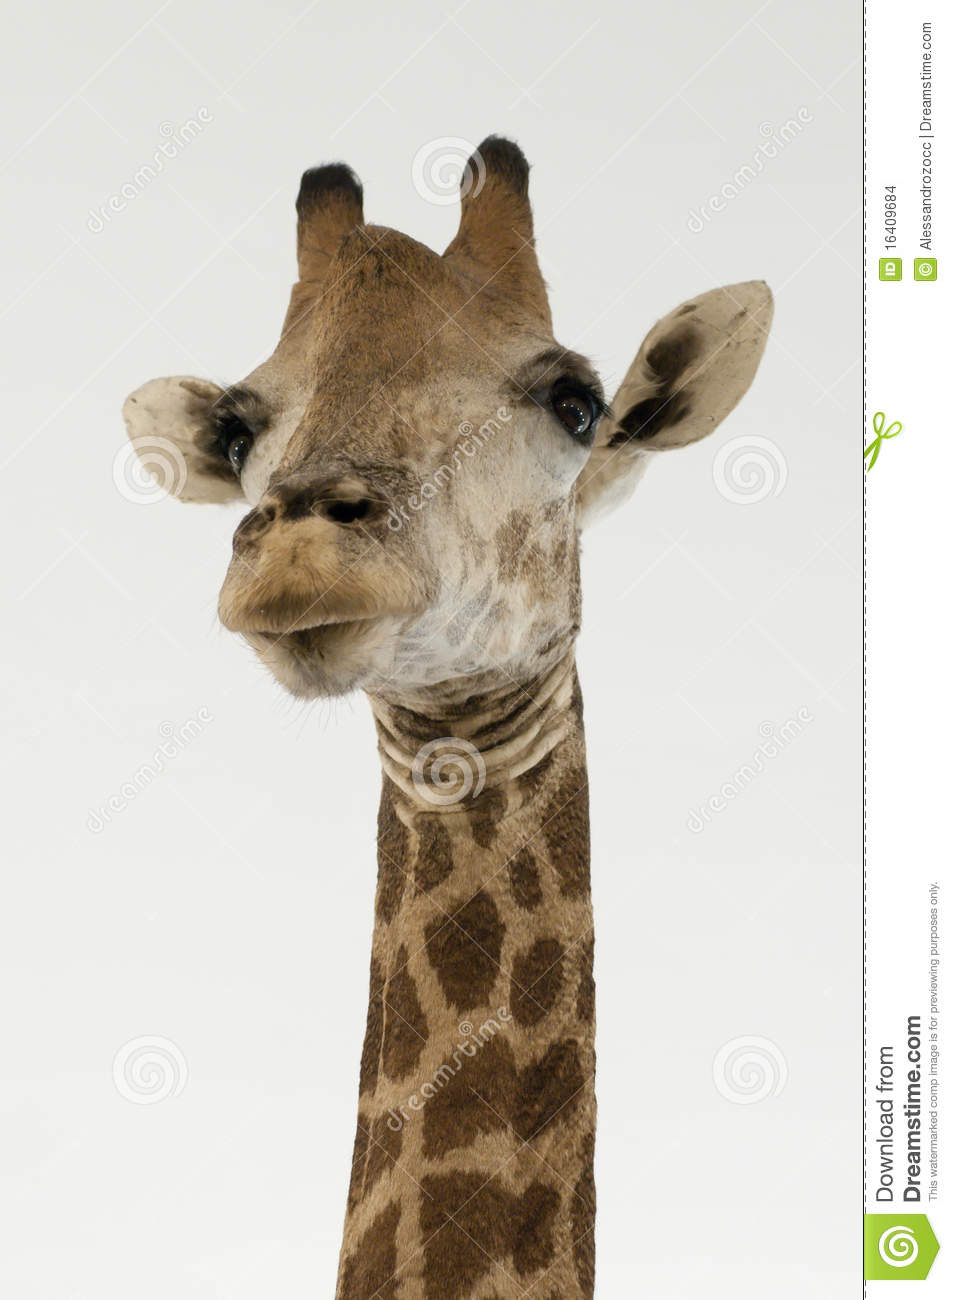 giraffe head white background - photo #12